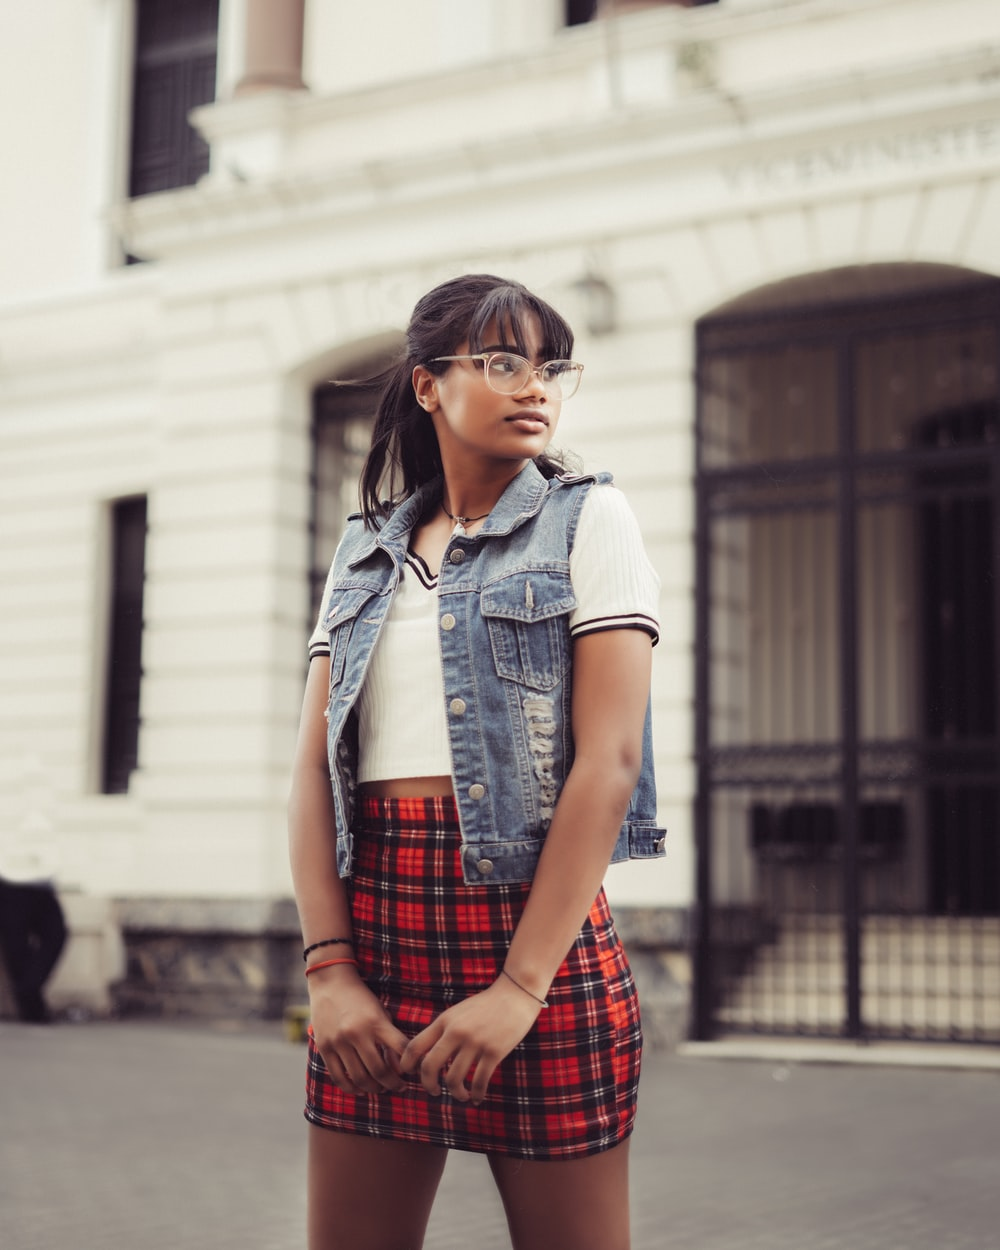 woman in blue denim button up jacket and red and black plaid skirt standing on sidewalk